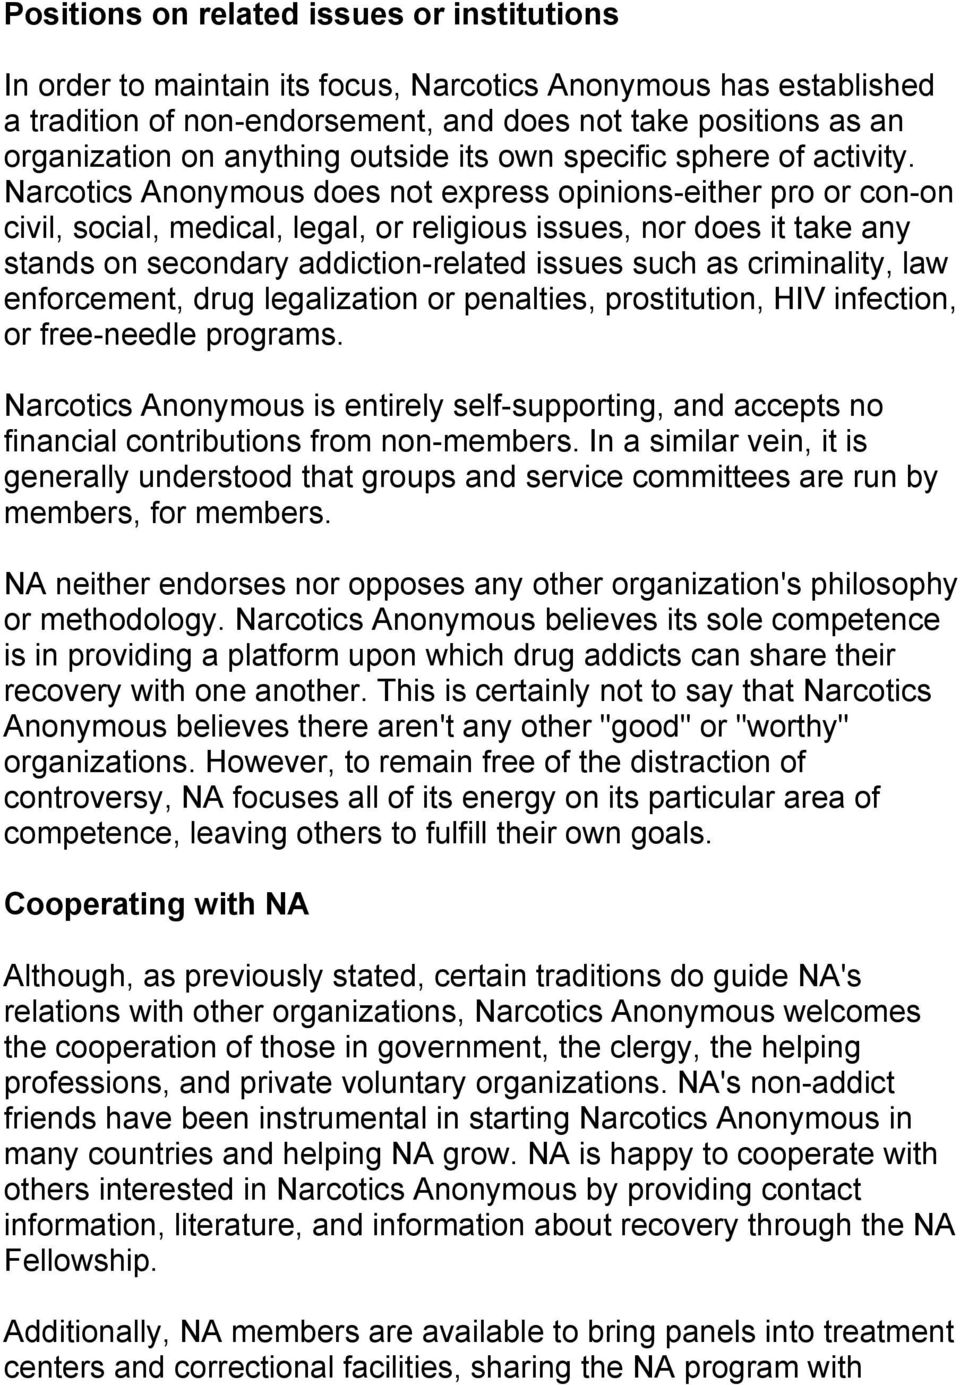 Narcotics Anonymous does not express opinions-either pro or con-on civil, social, medical, legal, or religious issues, nor does it take any stands on secondary addiction-related issues such as